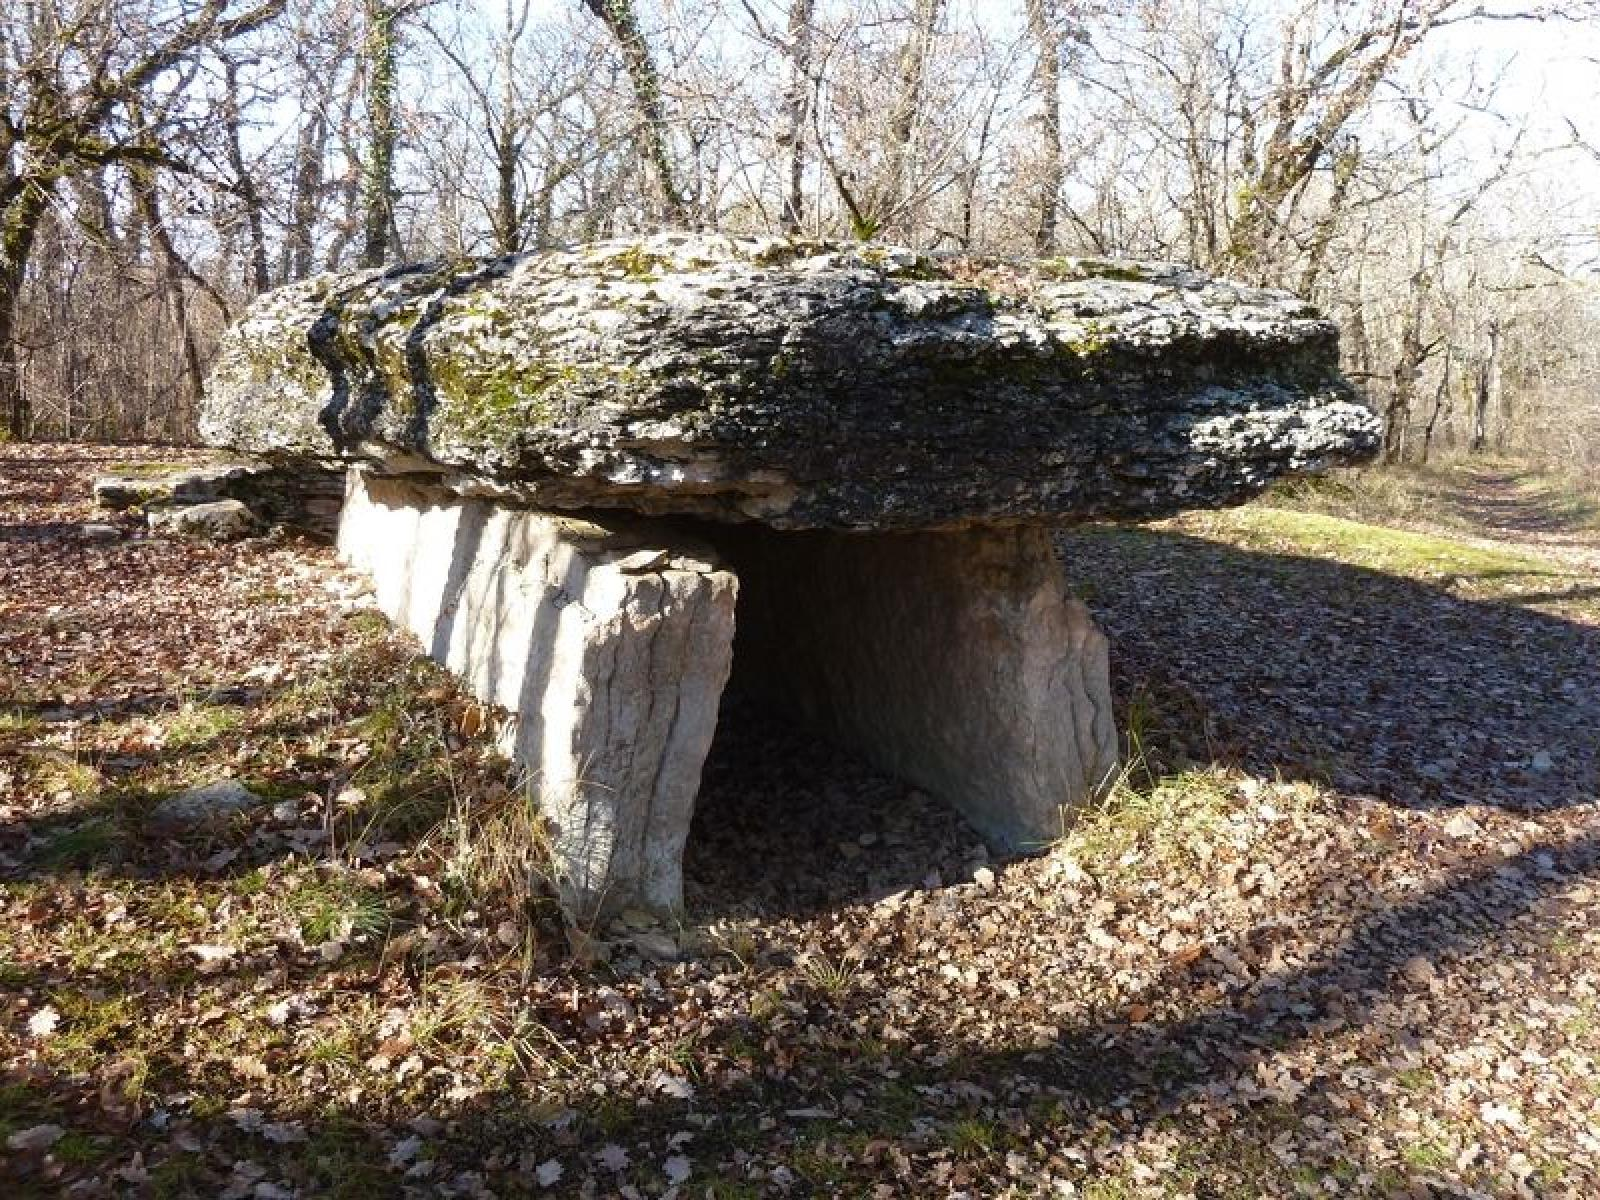 Photo of Martiel - Boucle des Dolmens (Lot - France)